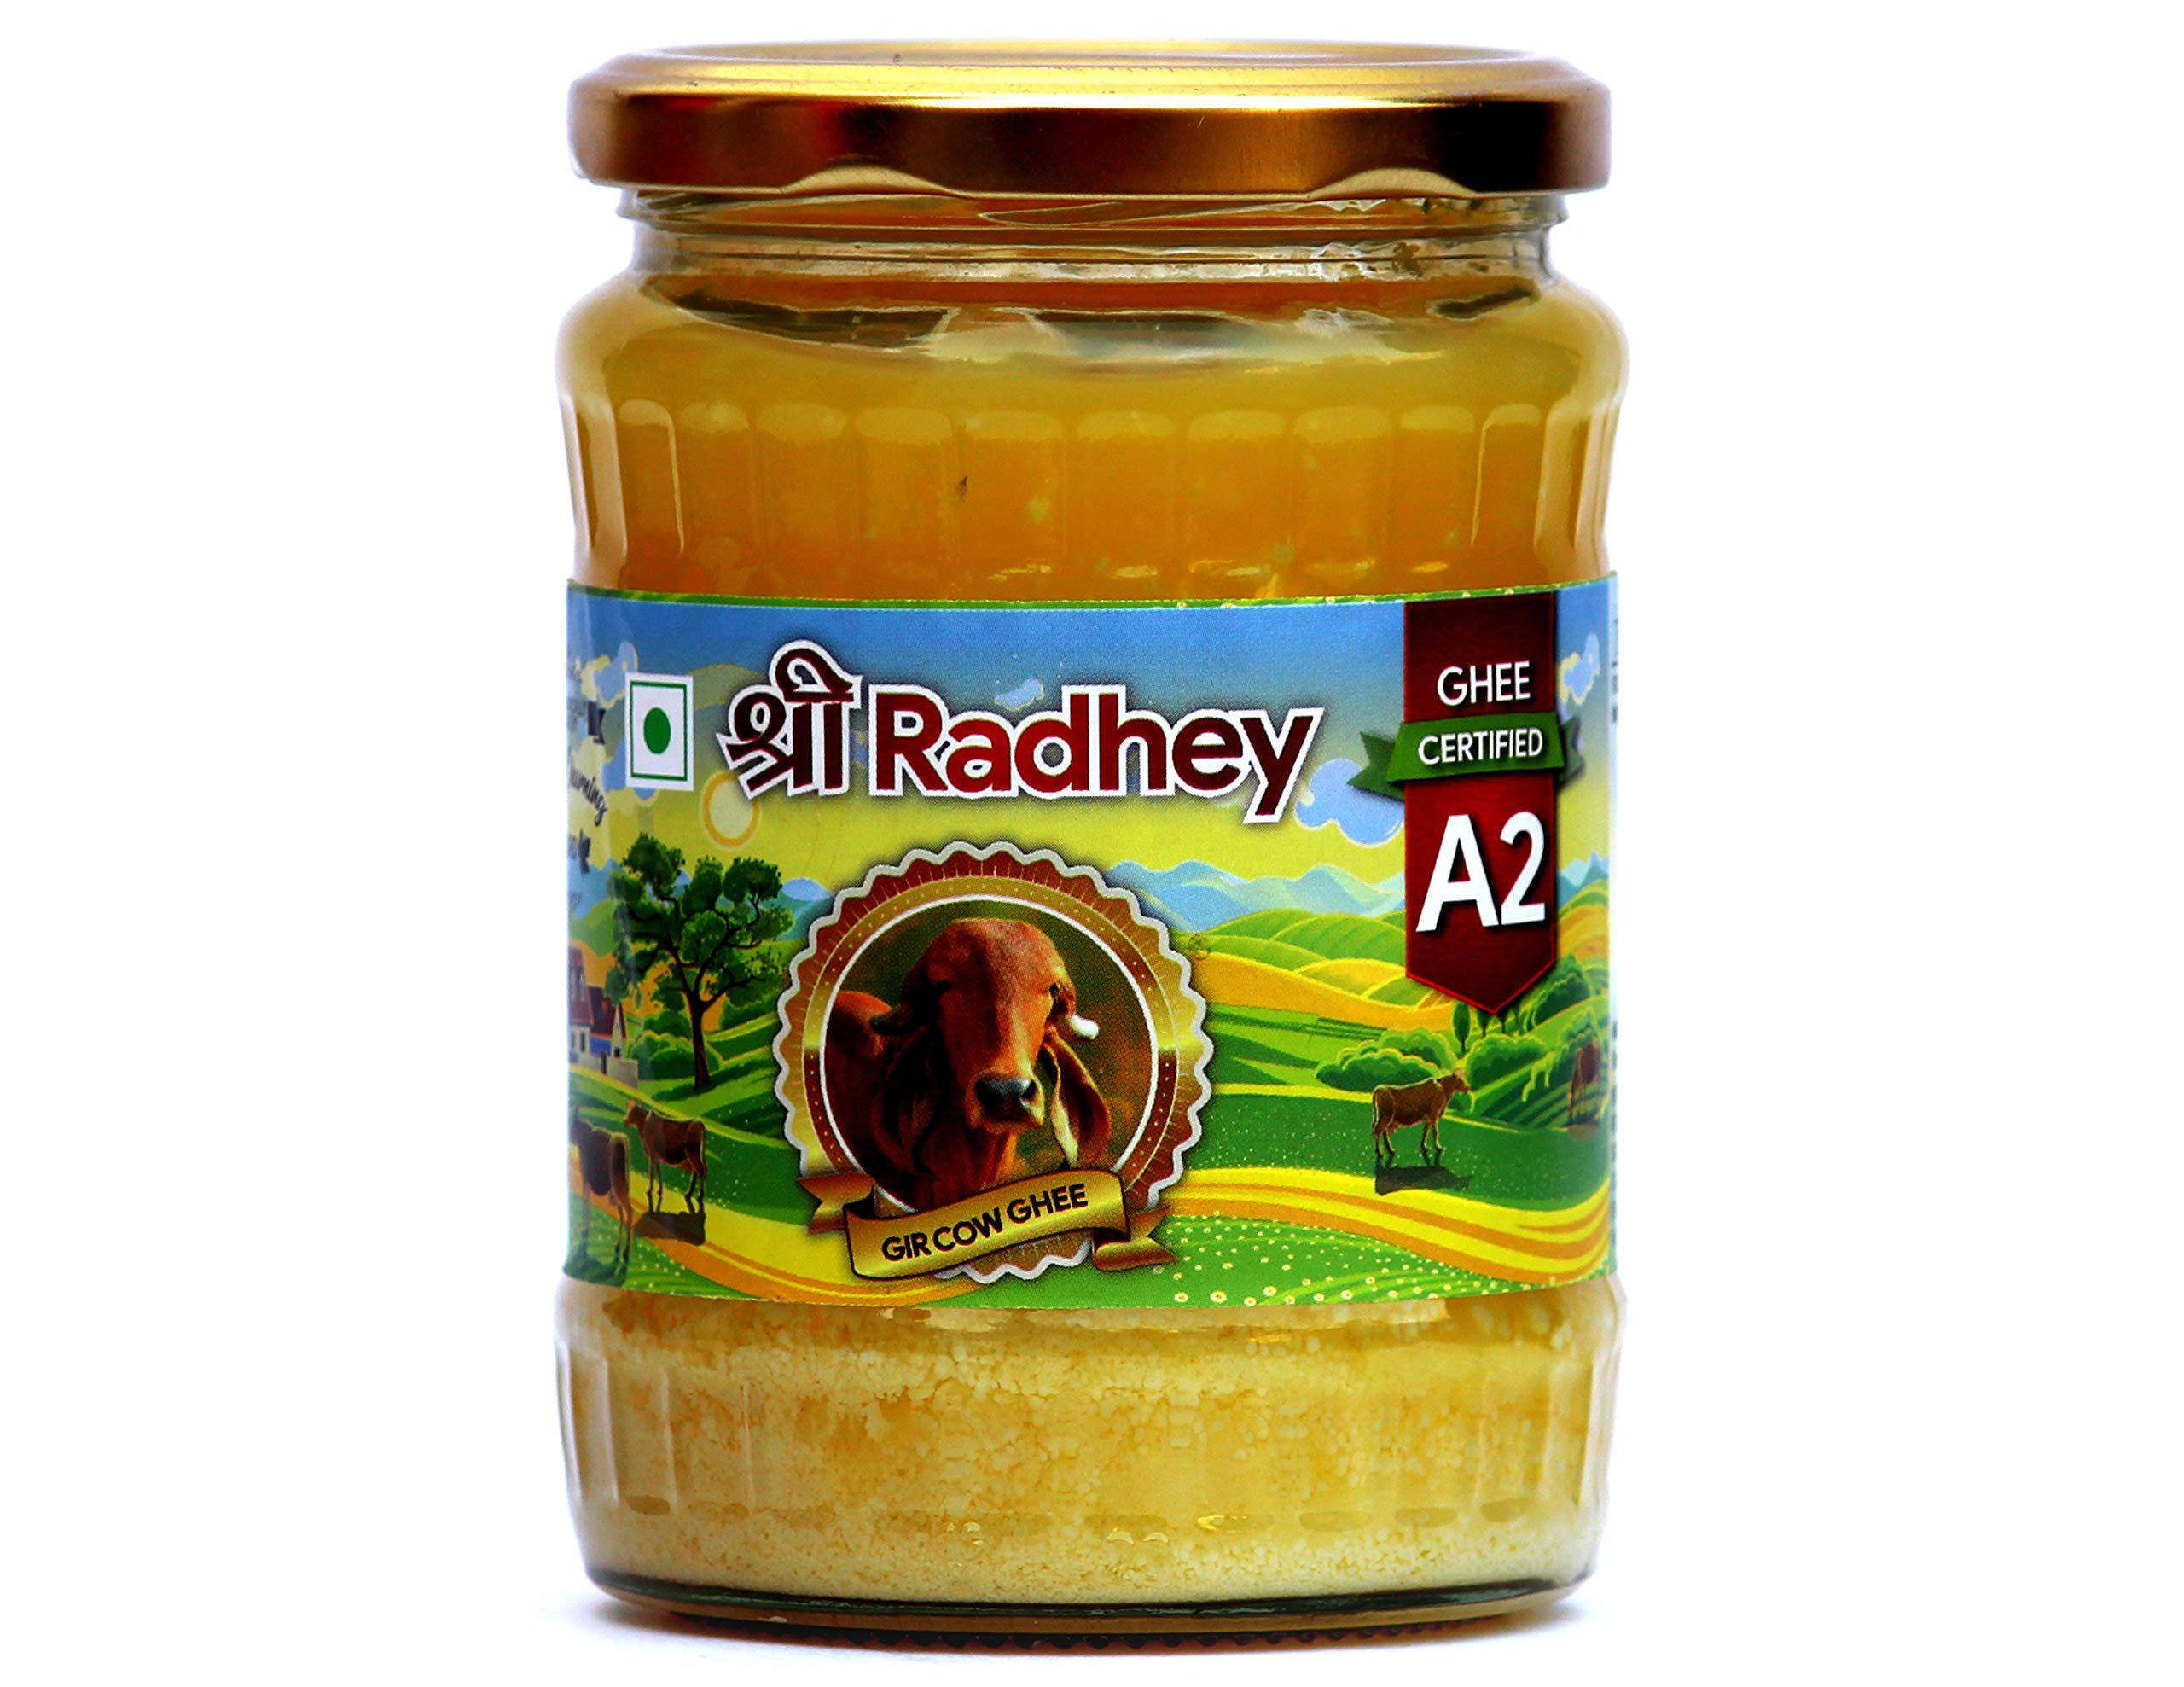 Shree Radhey Certified A2 Gir Cow Ghee - Clarified Butter - 100 % Grass Fed- (Traditionaly Churned) 14 oz (400 gm))